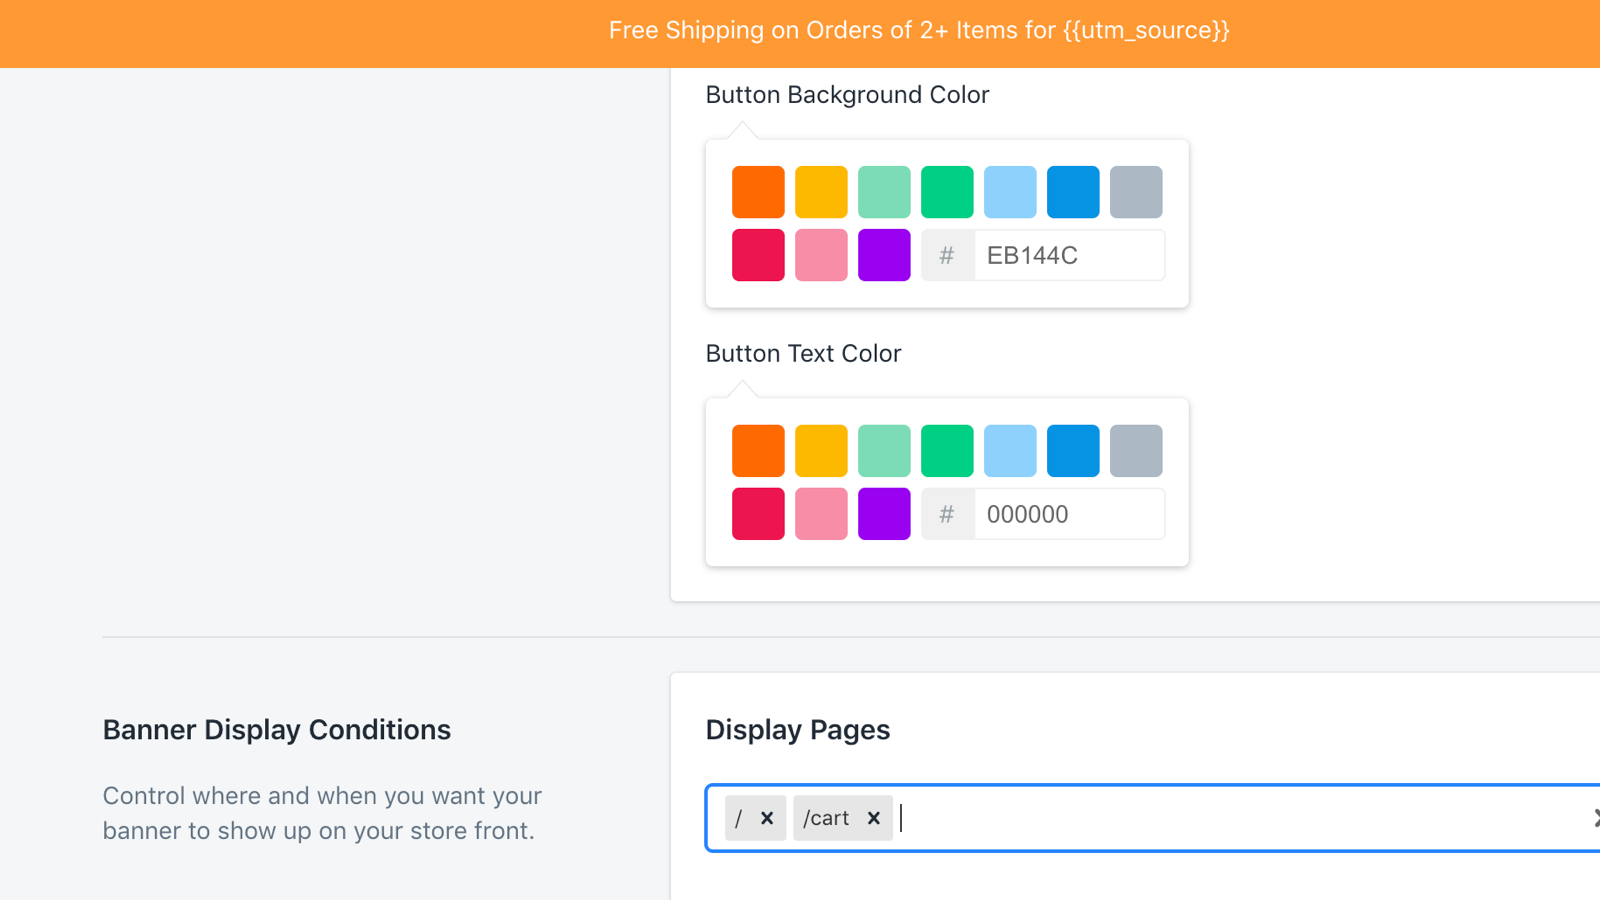 Set custom colors and pages to display the banner